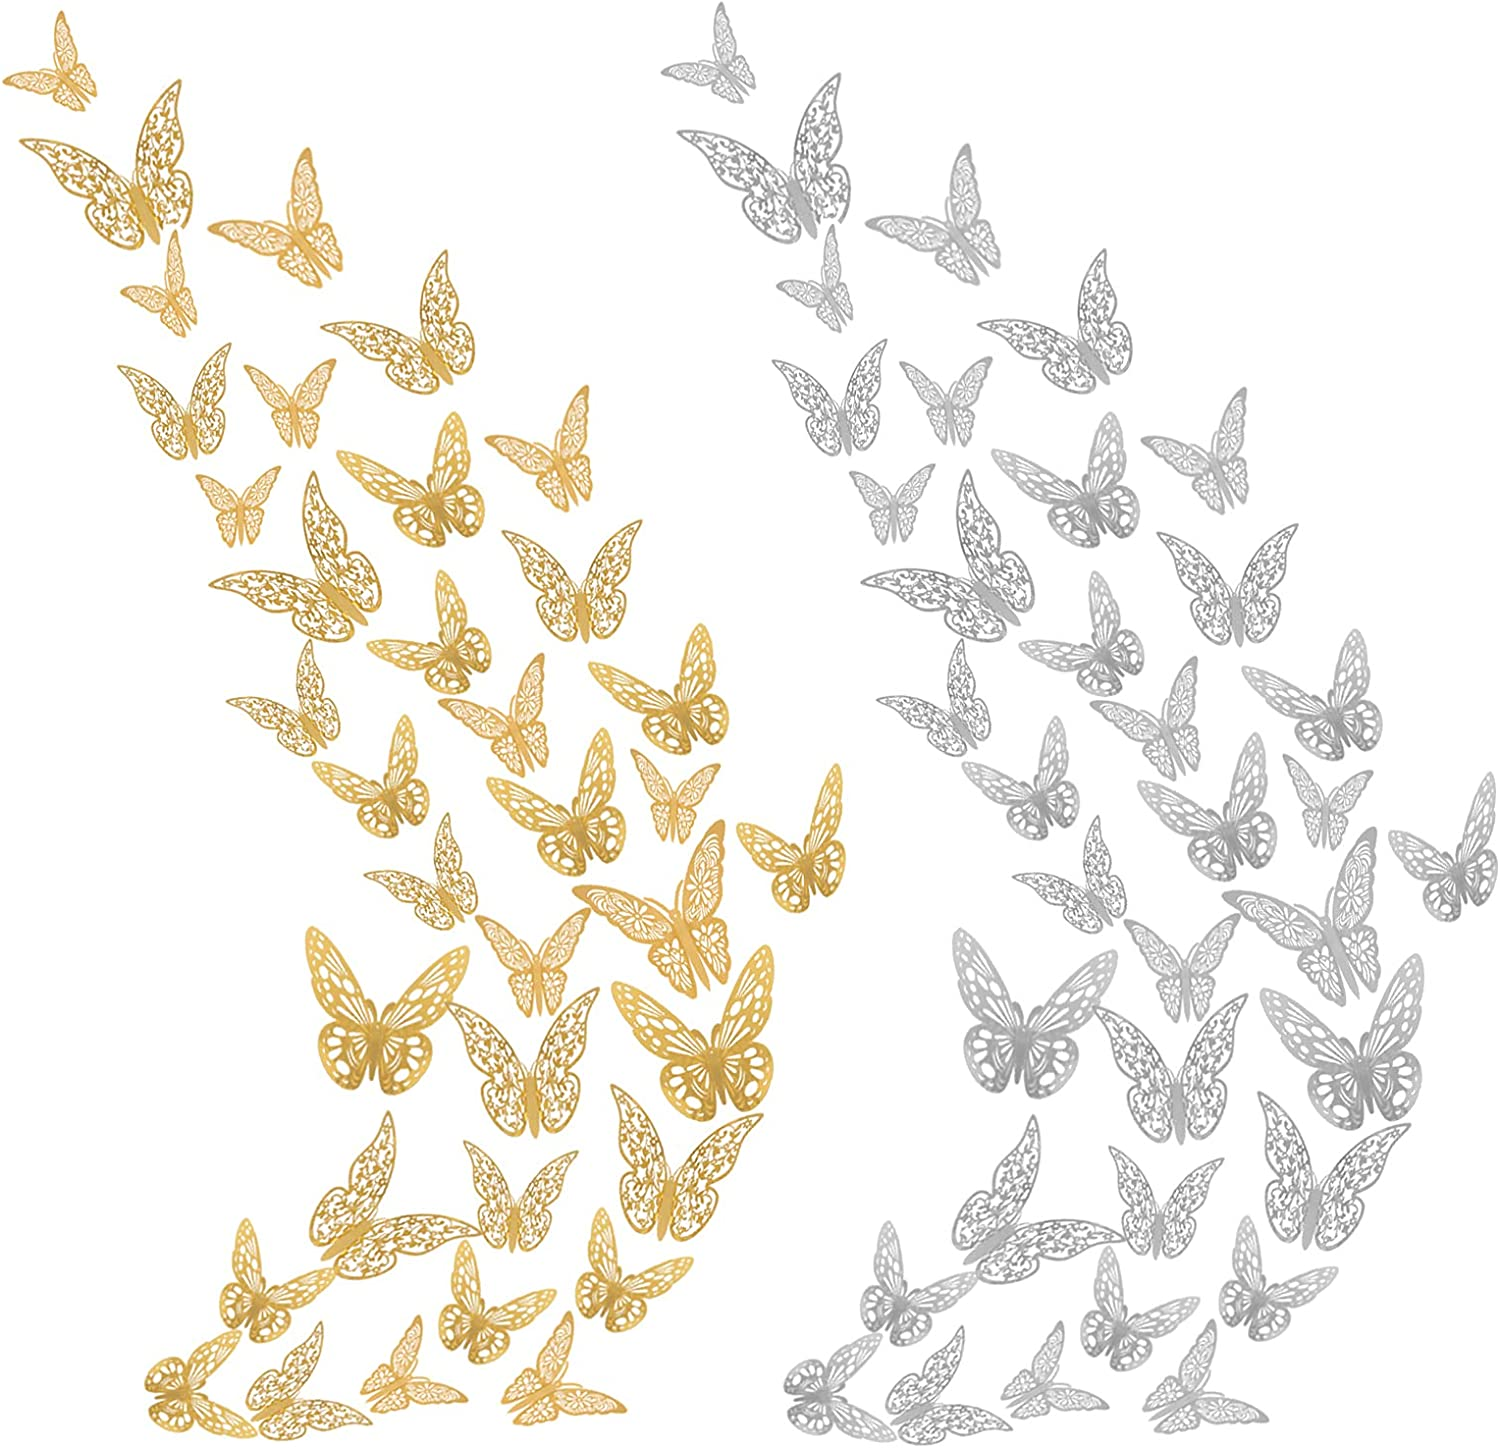 UKYLIN 3D Butterfly Wall Decor, 72Pcs, 3 Styles, 3 Size Gold and Silver Butterflies Room Decals for Wedding, Party, Bedroom Wall Cake DIY Decorations